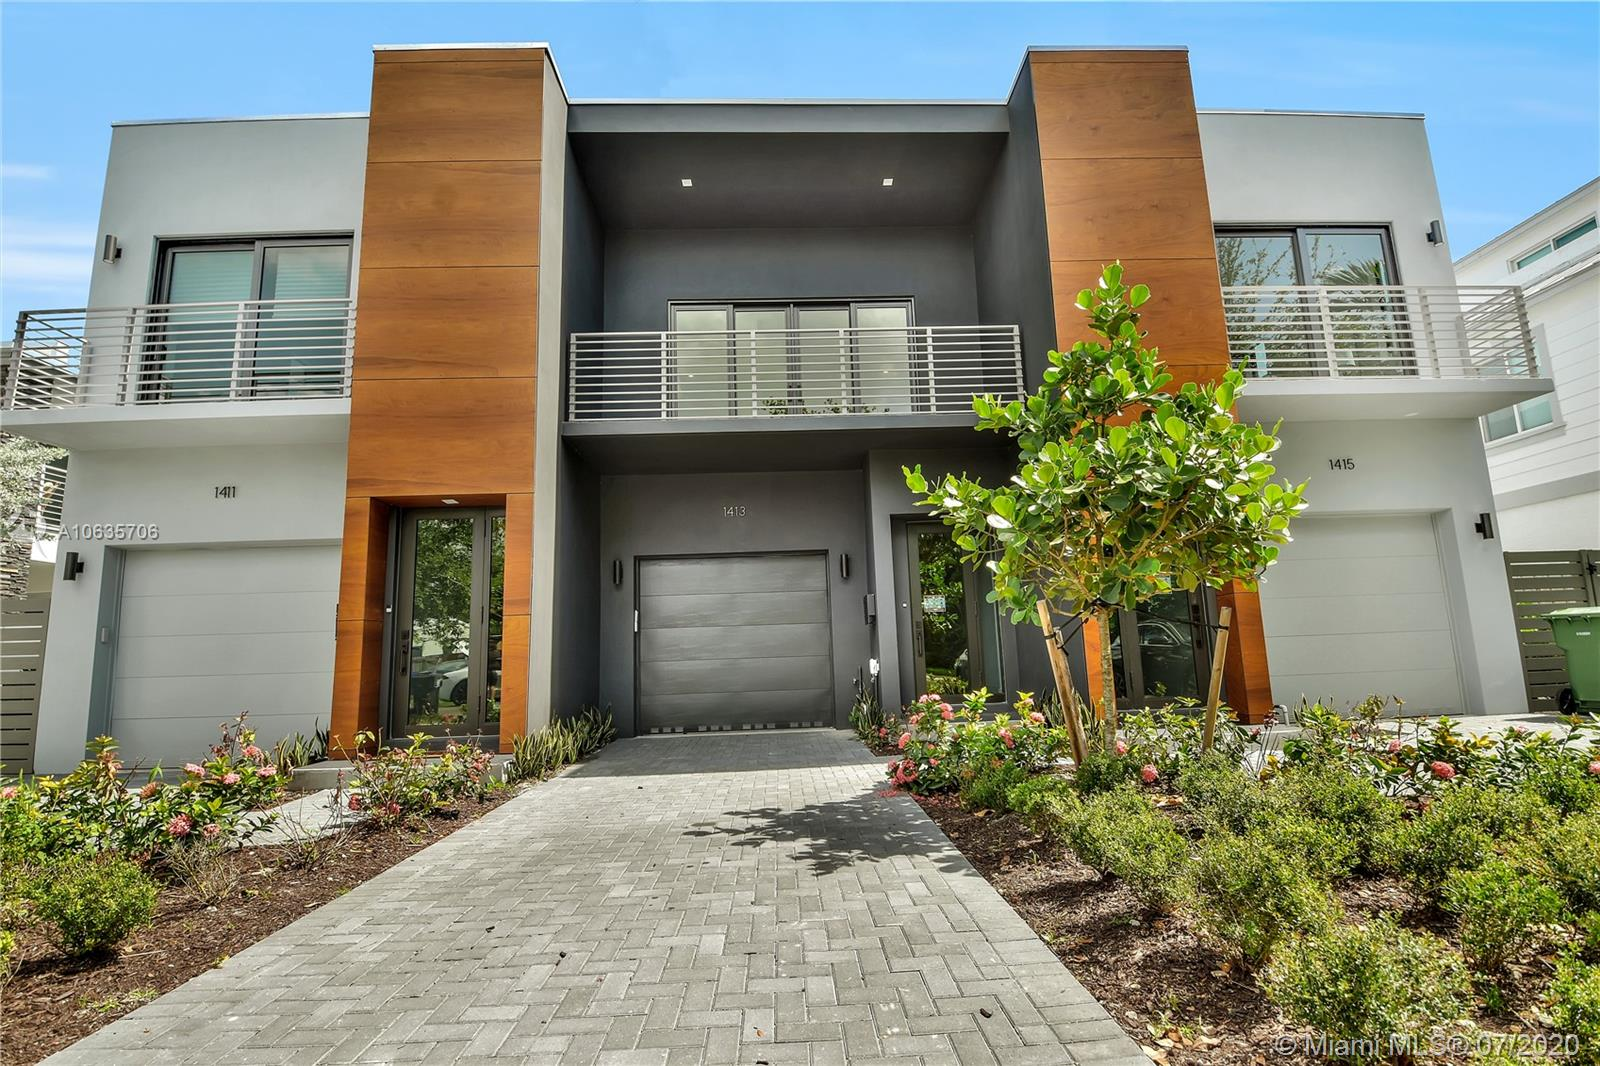 """You will love this delightful two-story contemporary-style townhome located in the heart of Victoria Park. This Two-bedroom, two-and-a-half-bathroom home gives you 2,360 square feet of spacious open floor plan elegance, 48""""x48"""" Italian porcelain floors throughout, 10-foot high ceilings with impact rated door and windows. The modern gourmet kitchen features first class European cabinets, Jenn Air Appliances and a cooking island. All of this situated in a convenient, friendly neighborhood with outstanding schools, only minutes from downtown Fort Lauderdale, trendy Las Olas Boulevard, amazing beaches, Port Everglades and the Fort Lauderdale-Hollywood International Airport. Built by an award winning Developer for outstanding achievement of urban design. Estimate Completion by January 2020."""